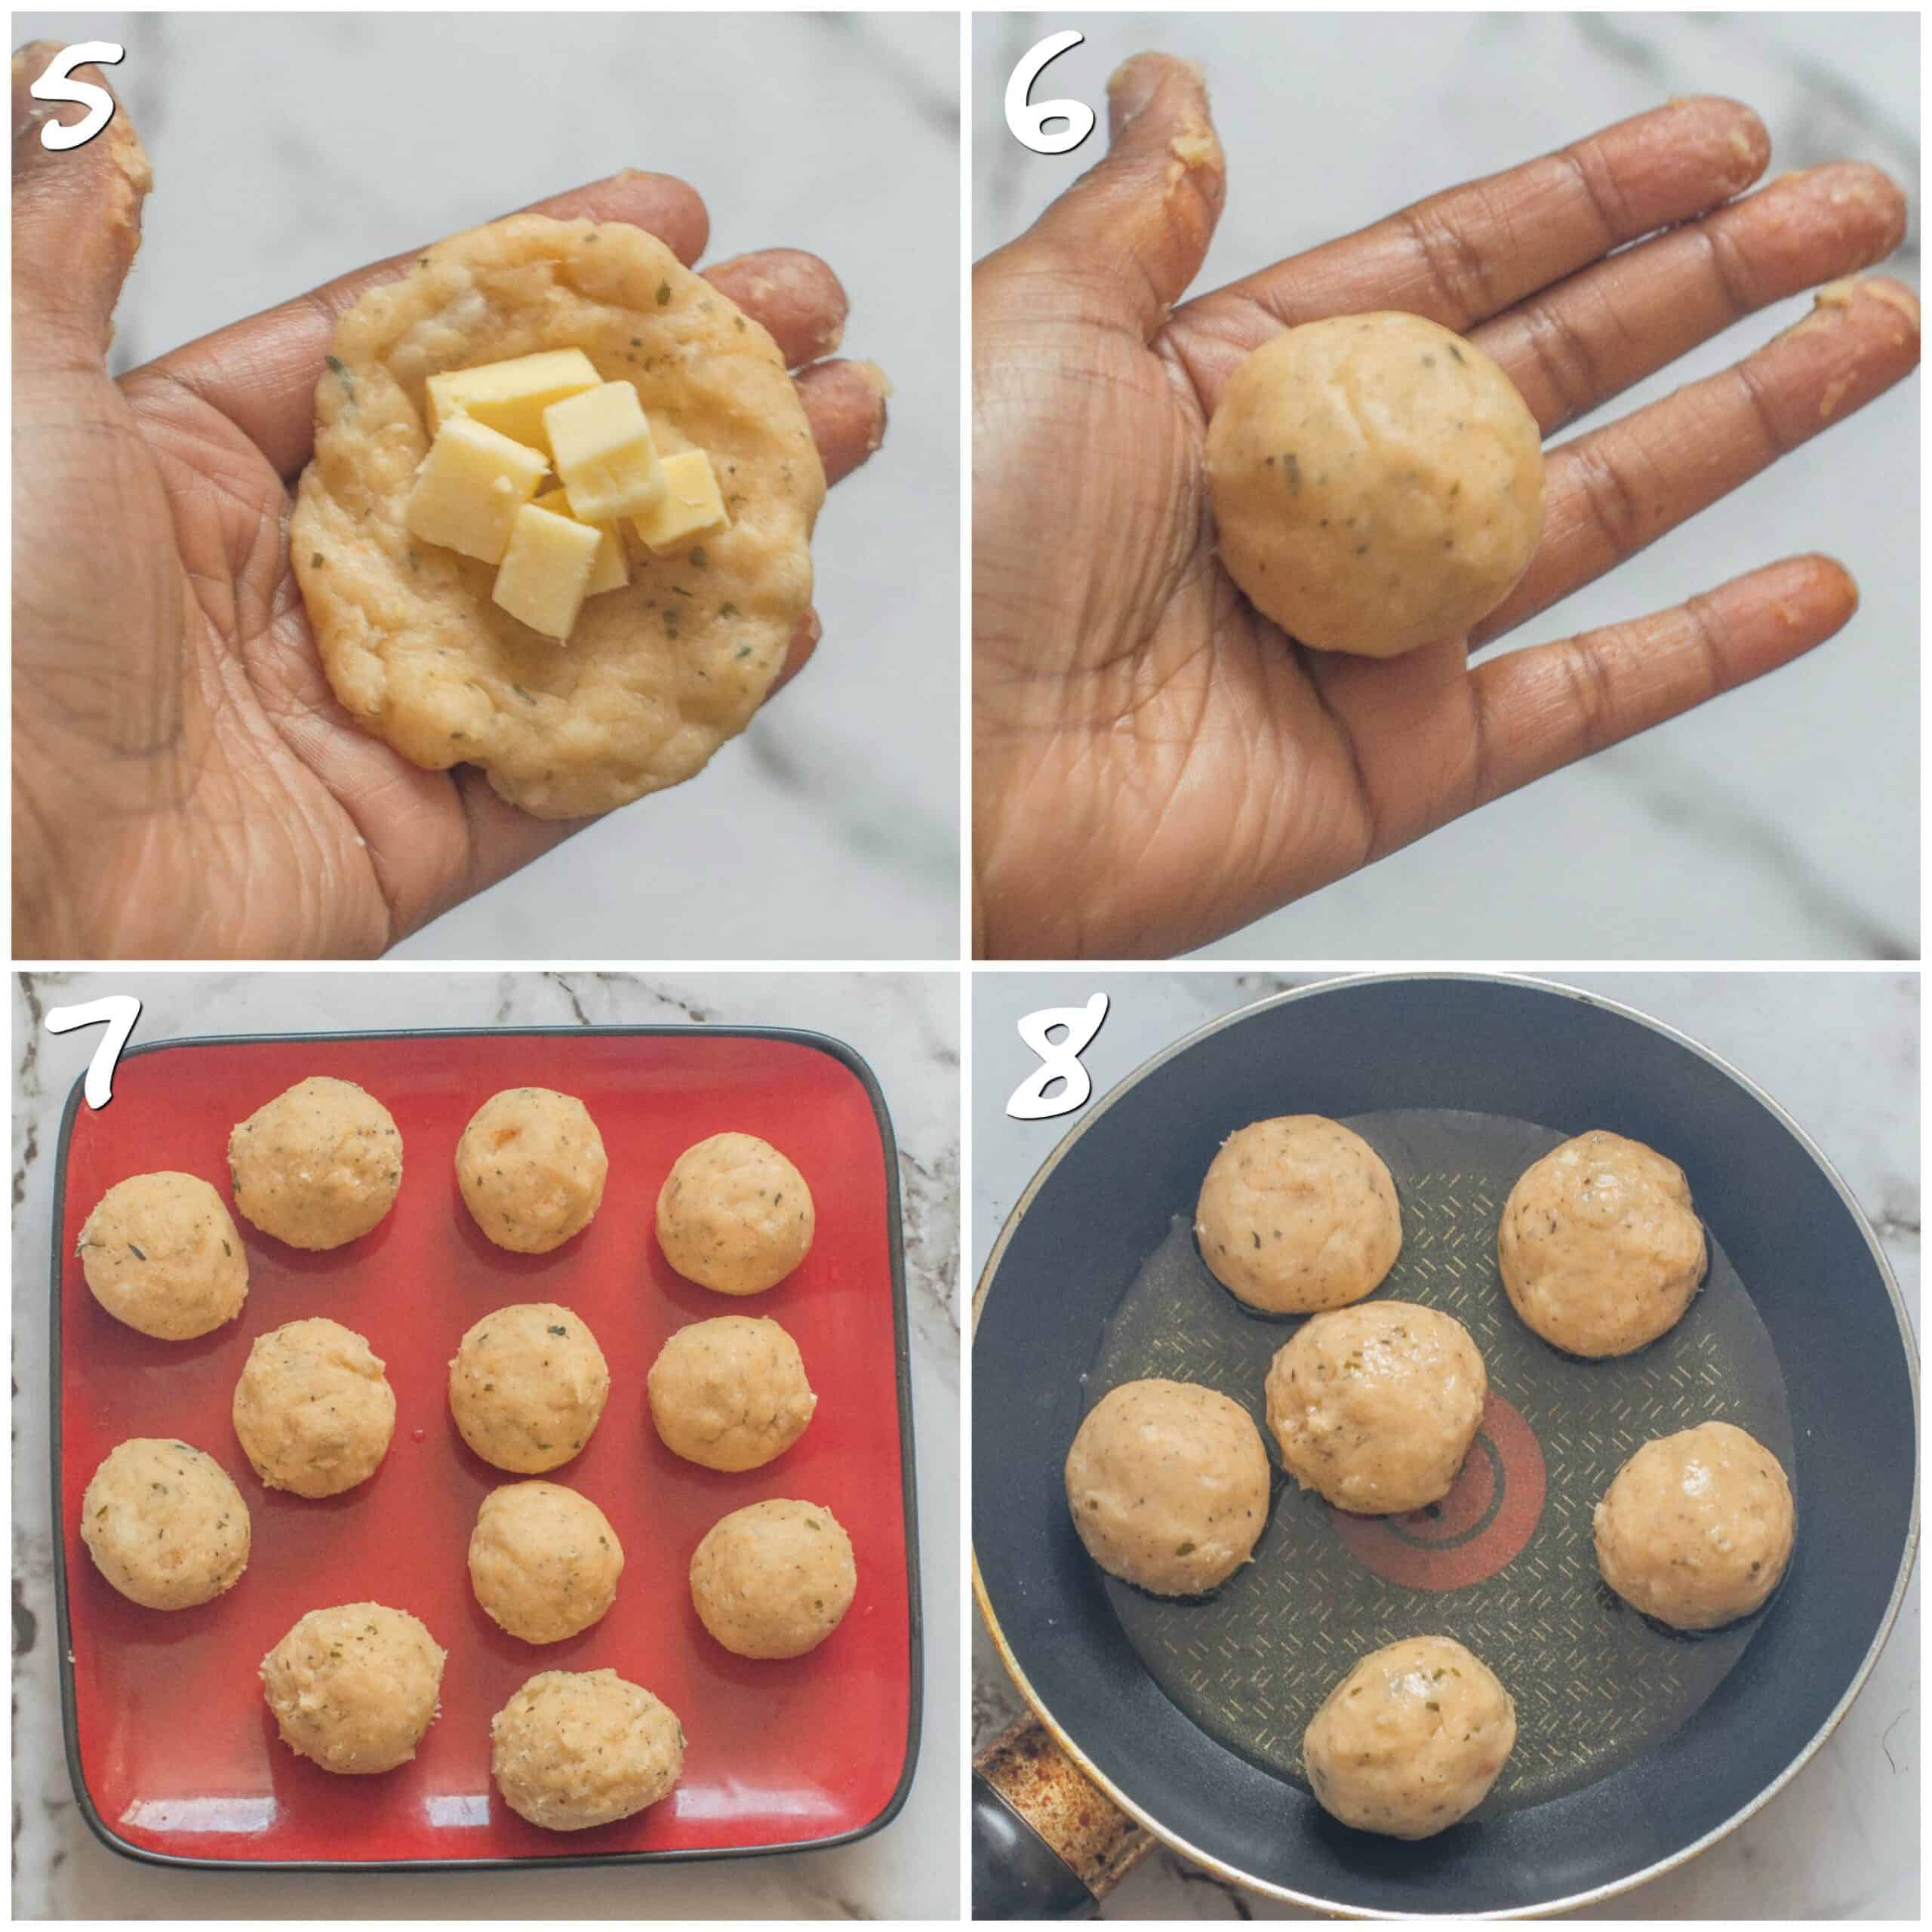 steps5-8 shaping the cheese balls